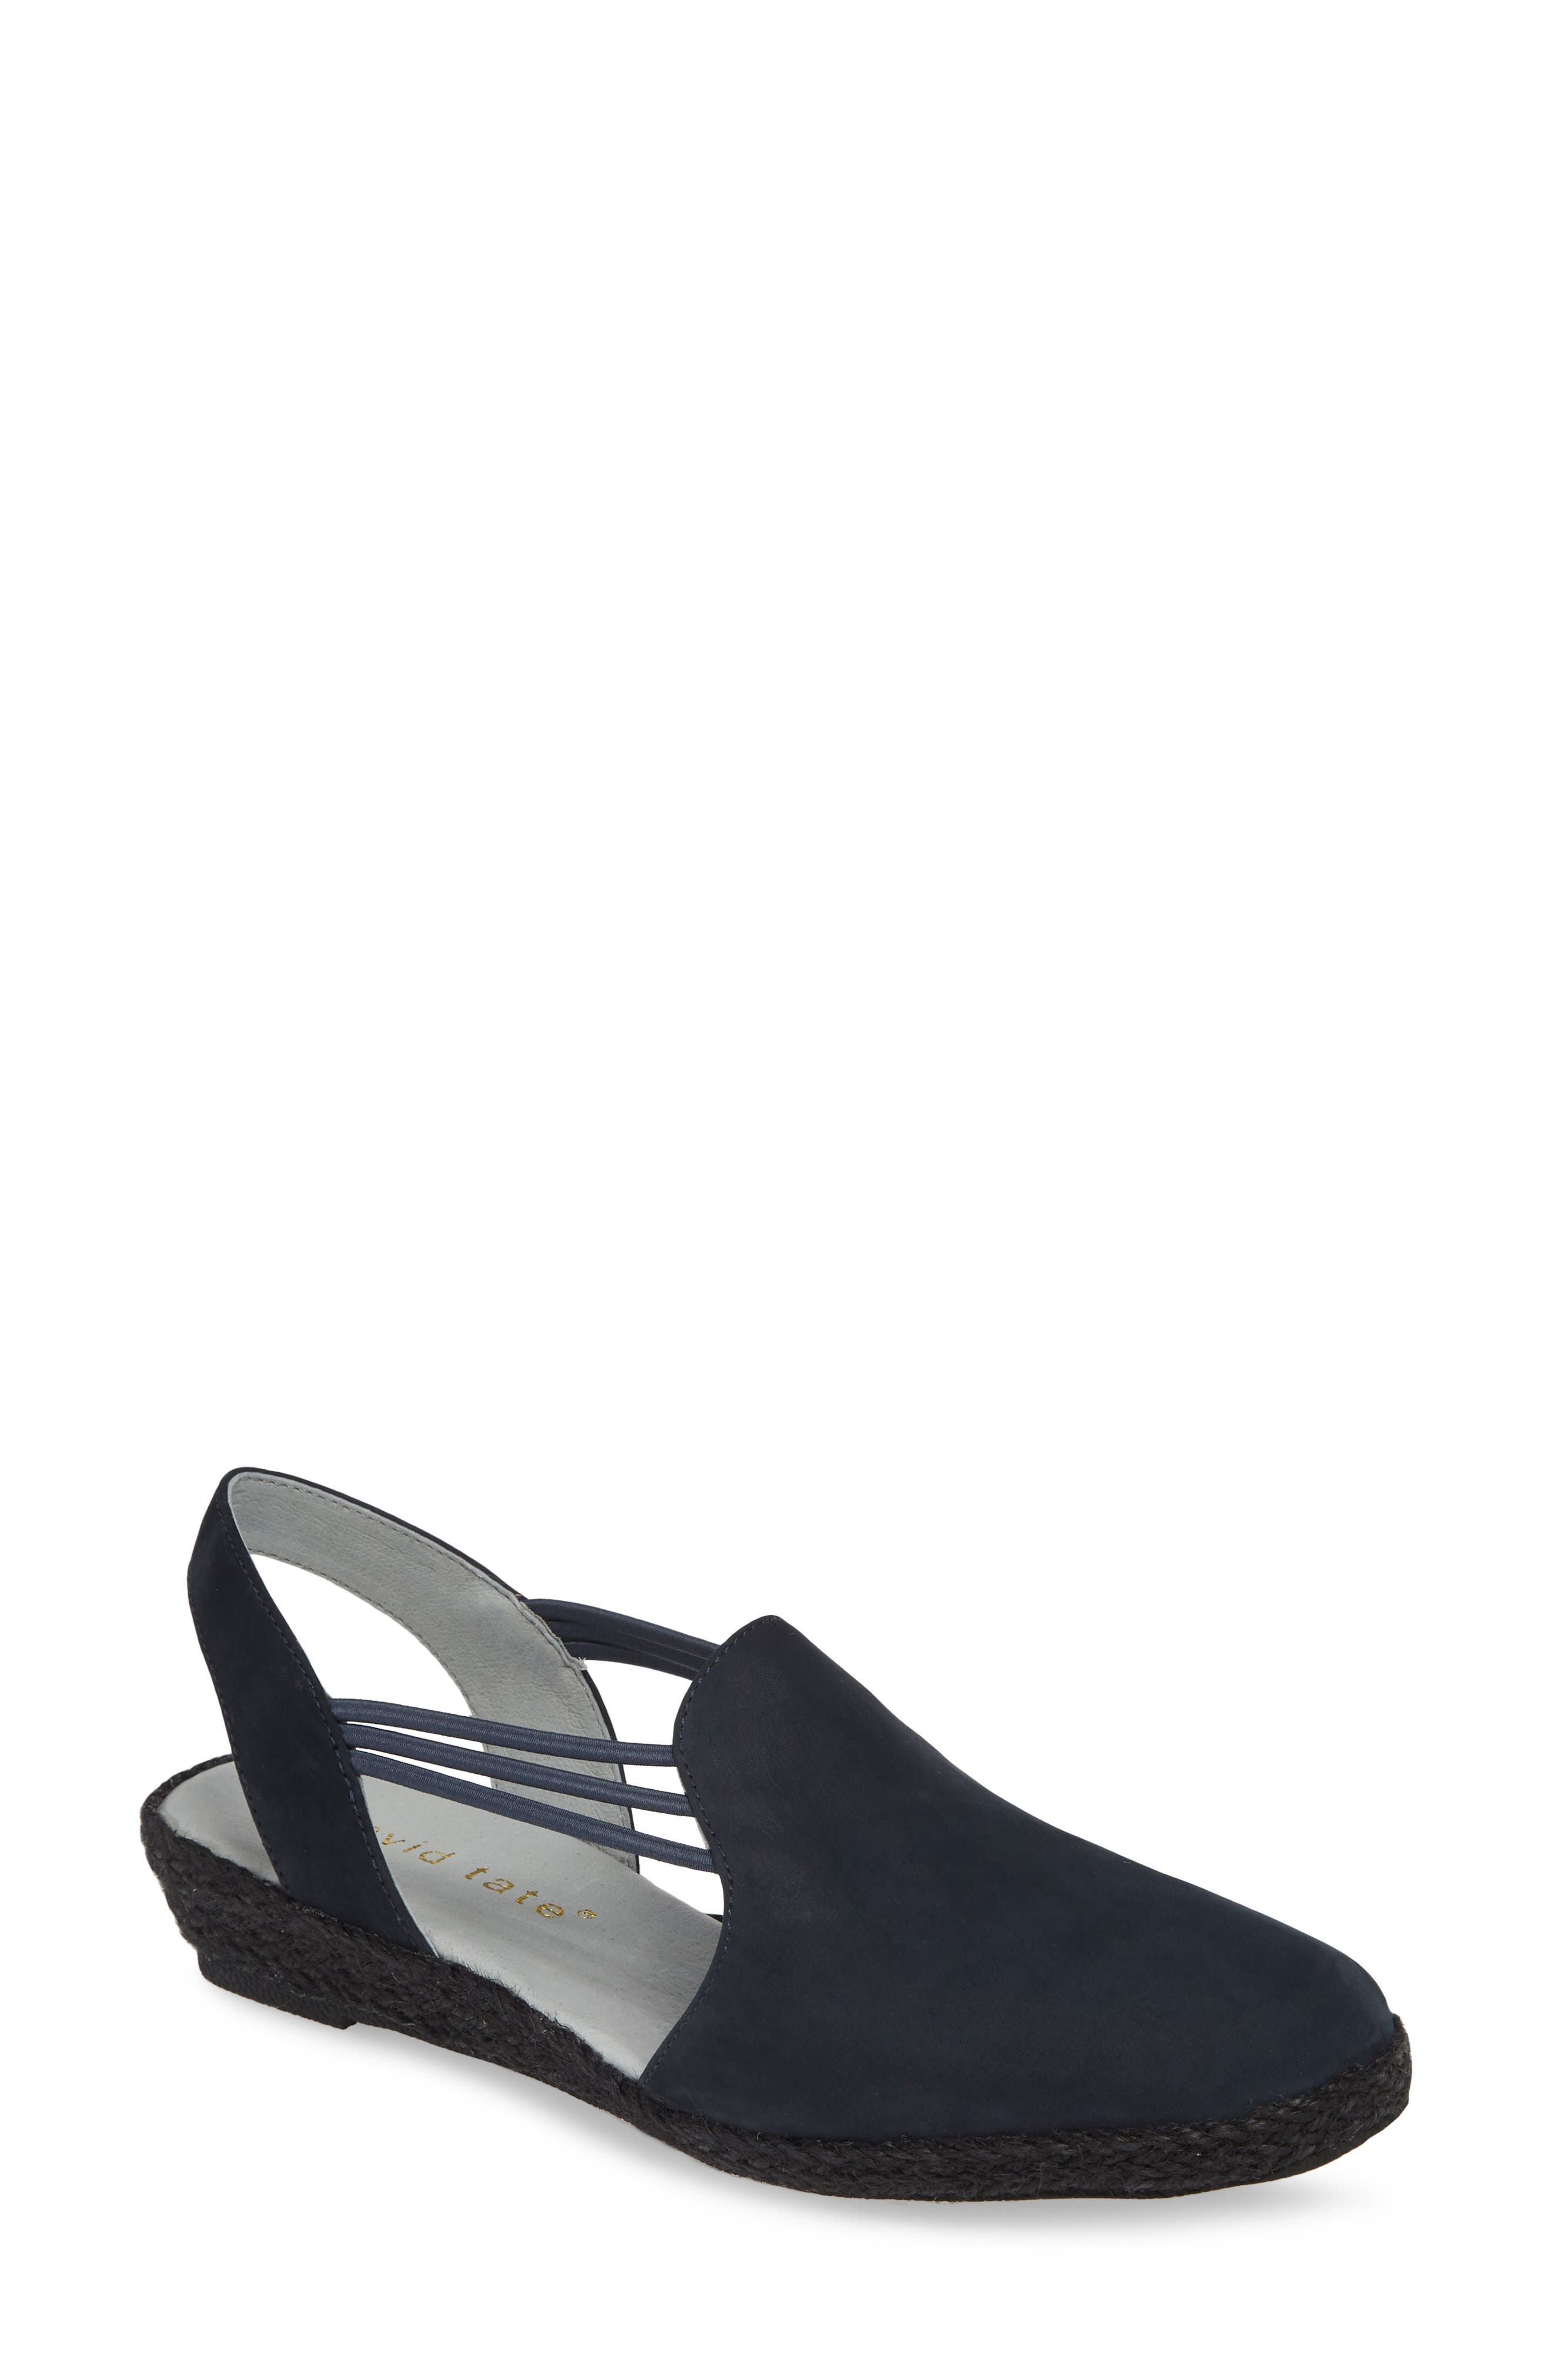 'Nelly' Slingback Wedge Sandal, Main, color, NAVY NUBUCK LEATHER